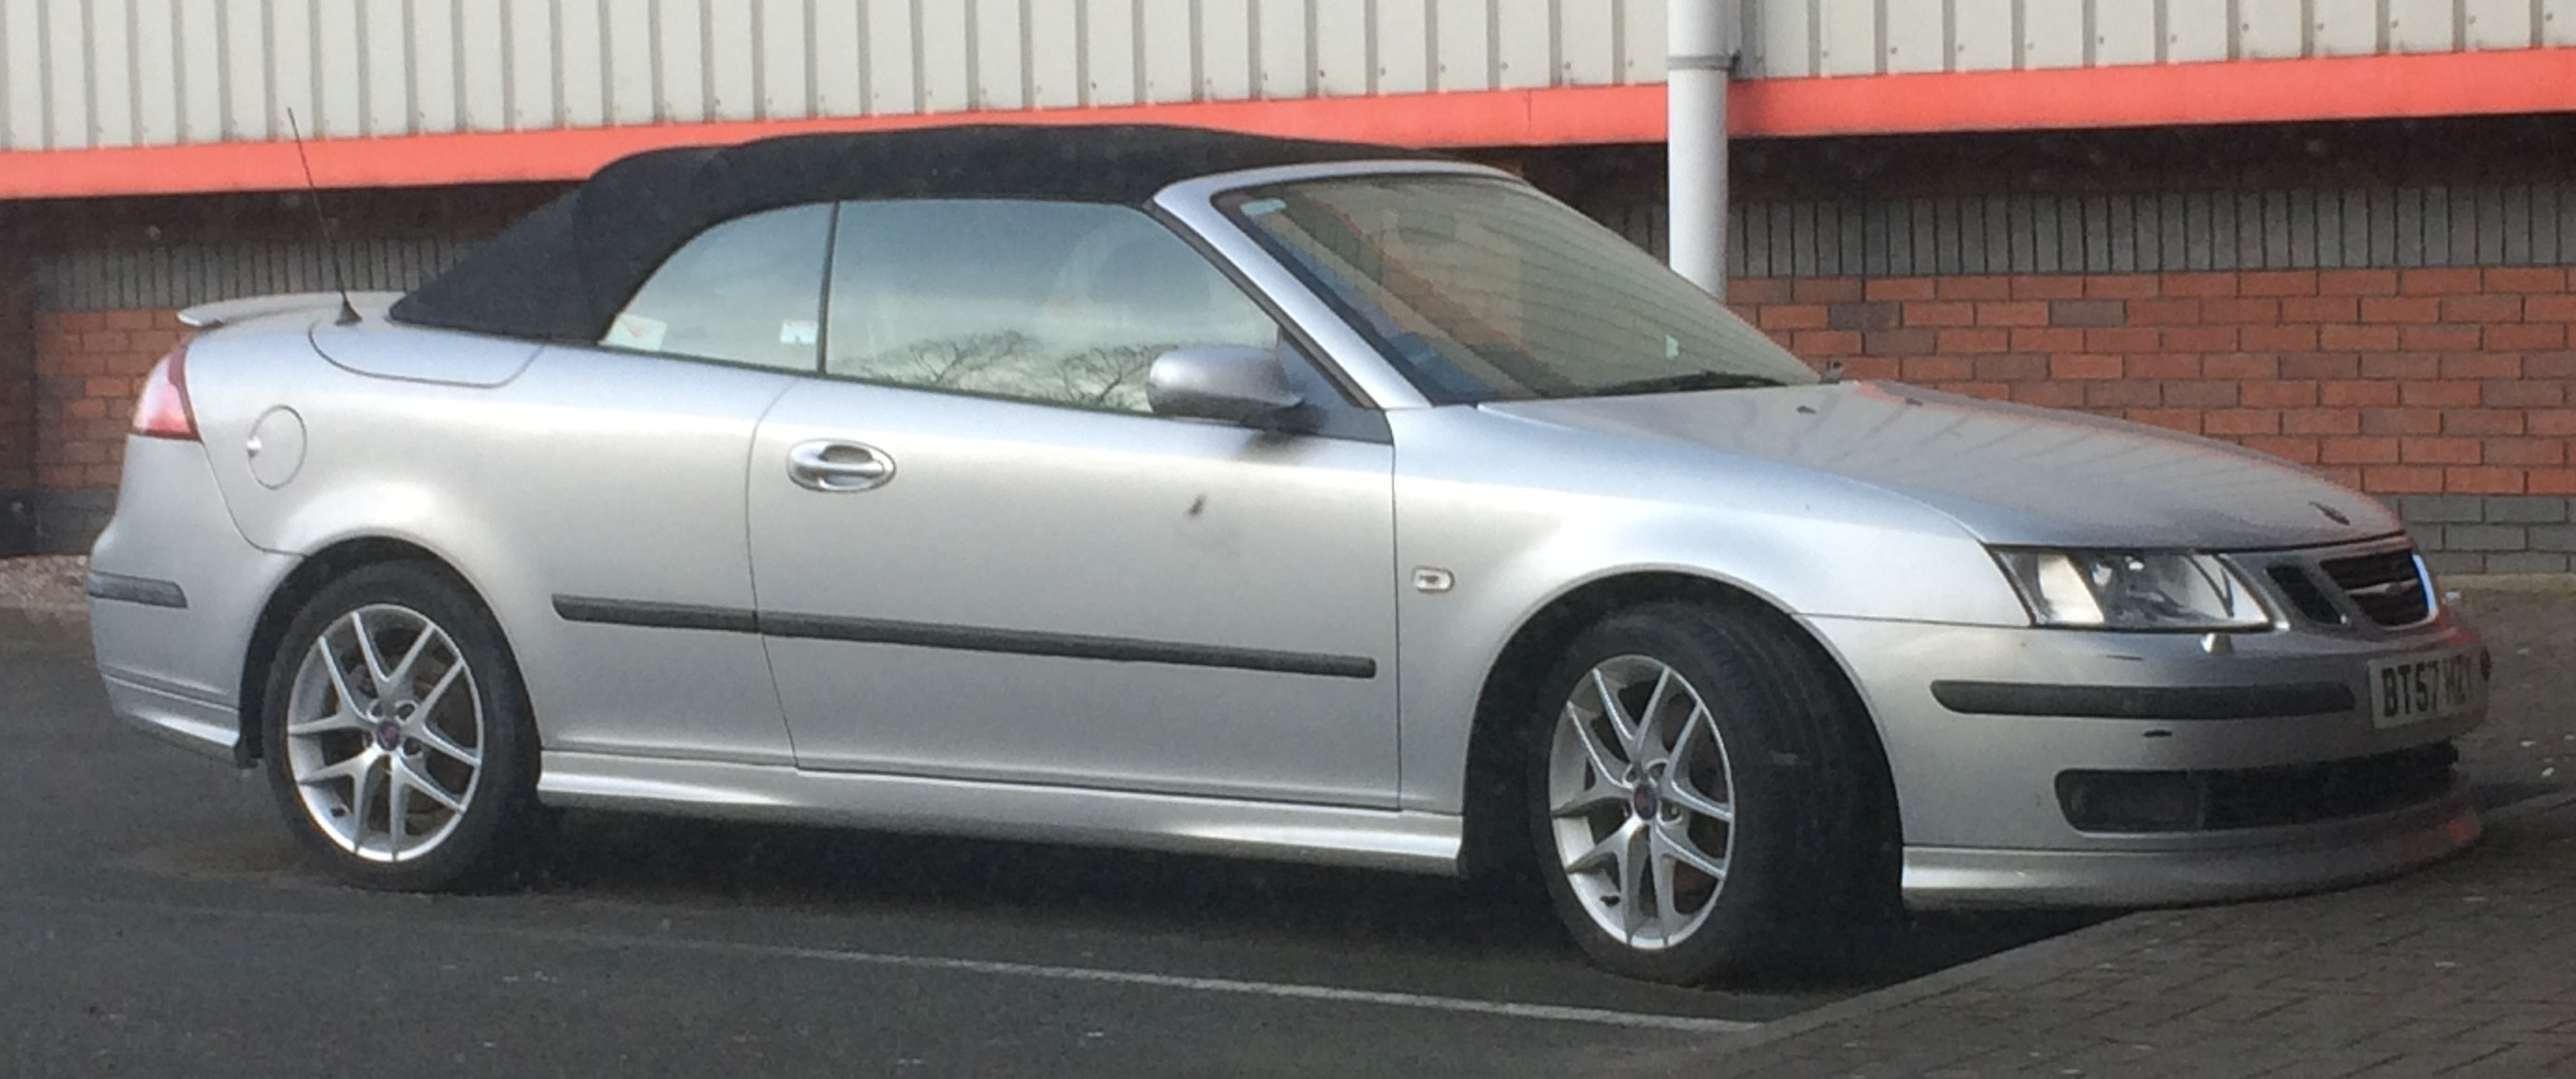 Saab 9-3 Cabriolet. Dream car